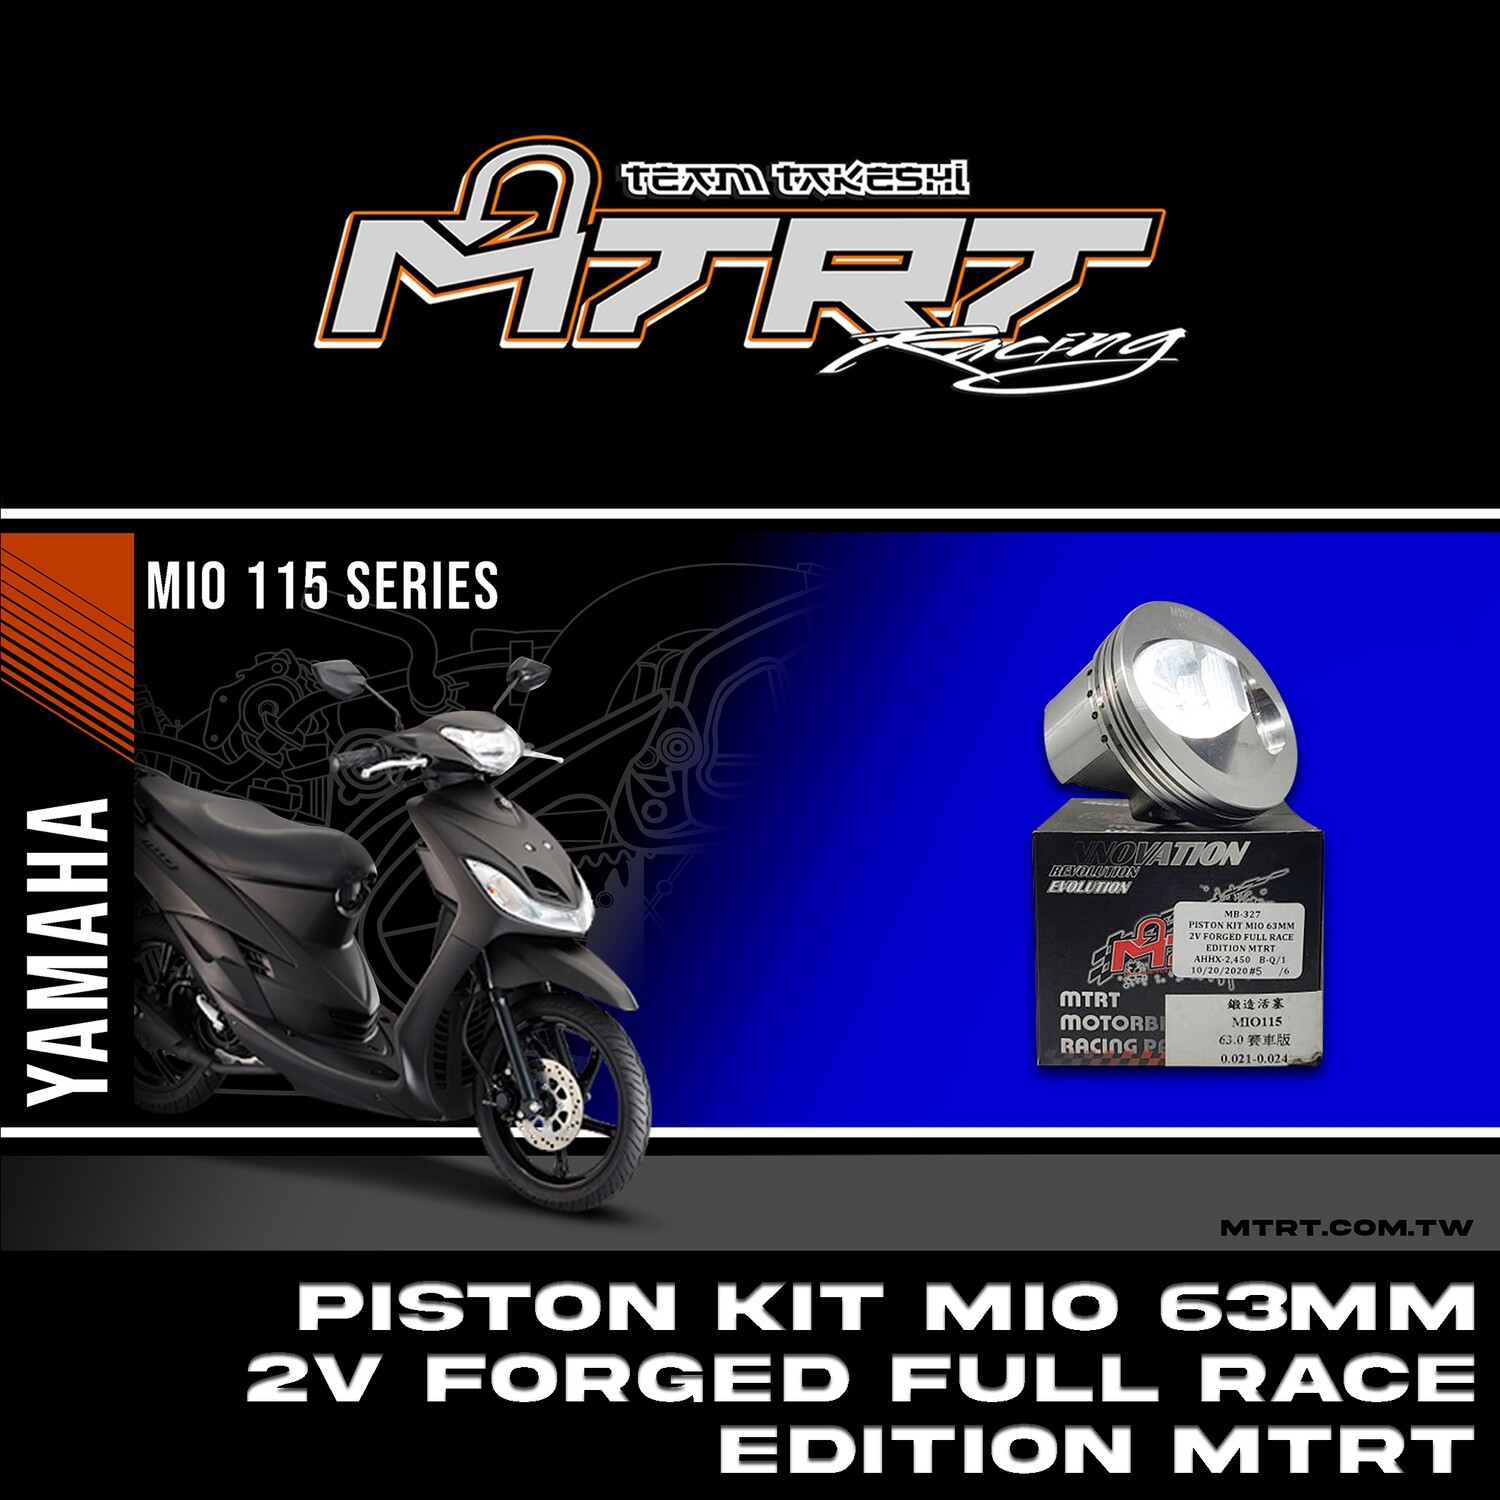 PISTON KIT MIO 63MM 2V FORGED FULL RACE EDITION MTRT